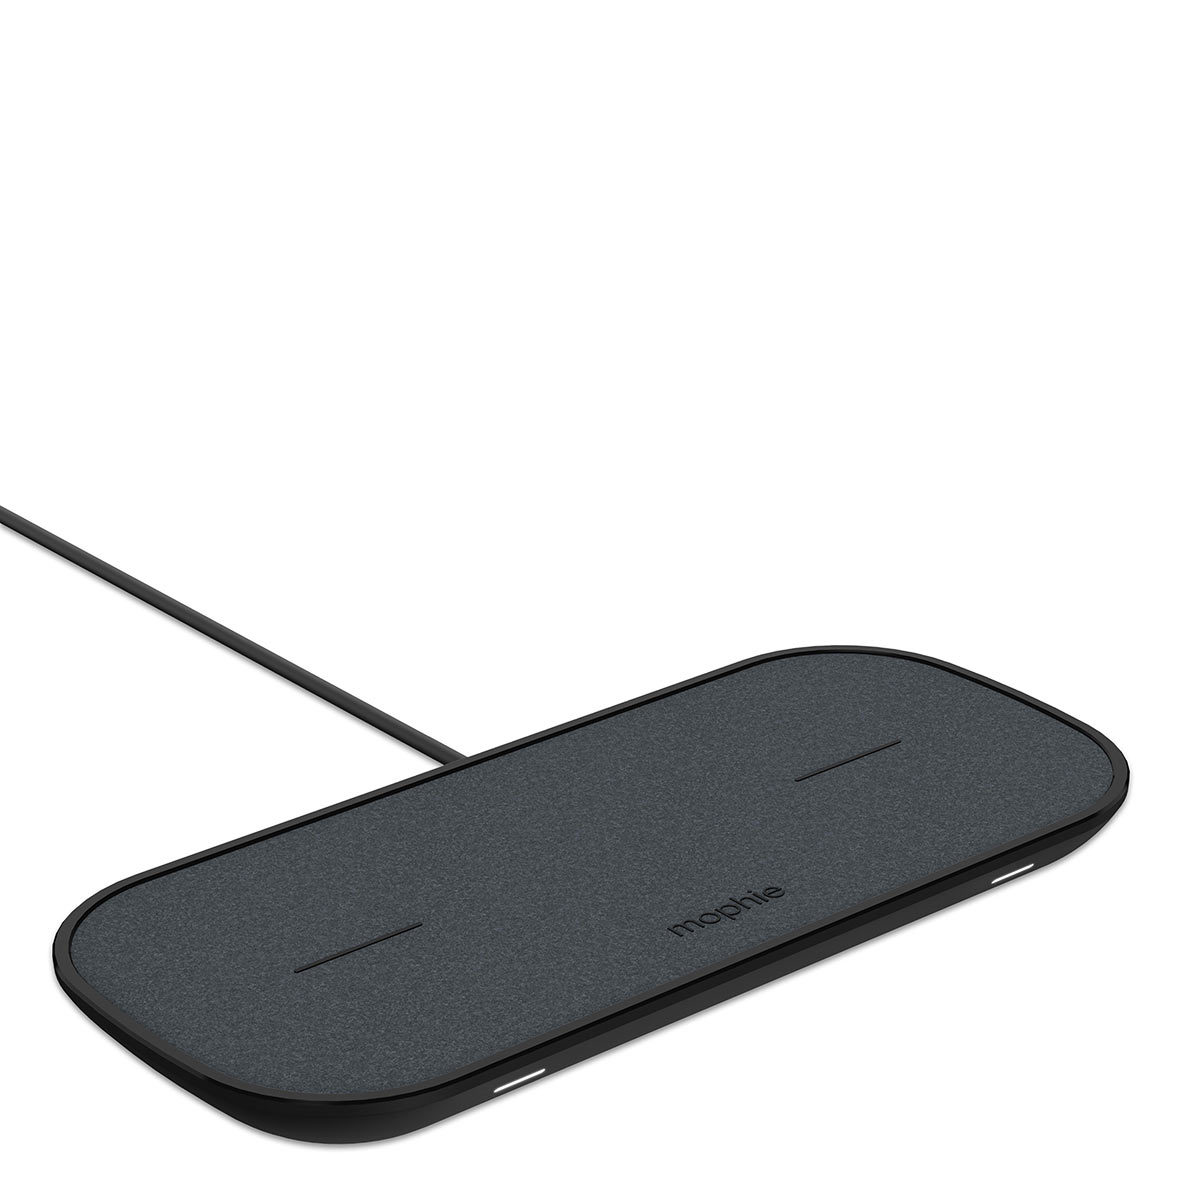 Mophie Dual Wireless Charging Pad In Black Costco Uk 5 out of 5 stars. mophie dual wireless charging pad in black costco uk